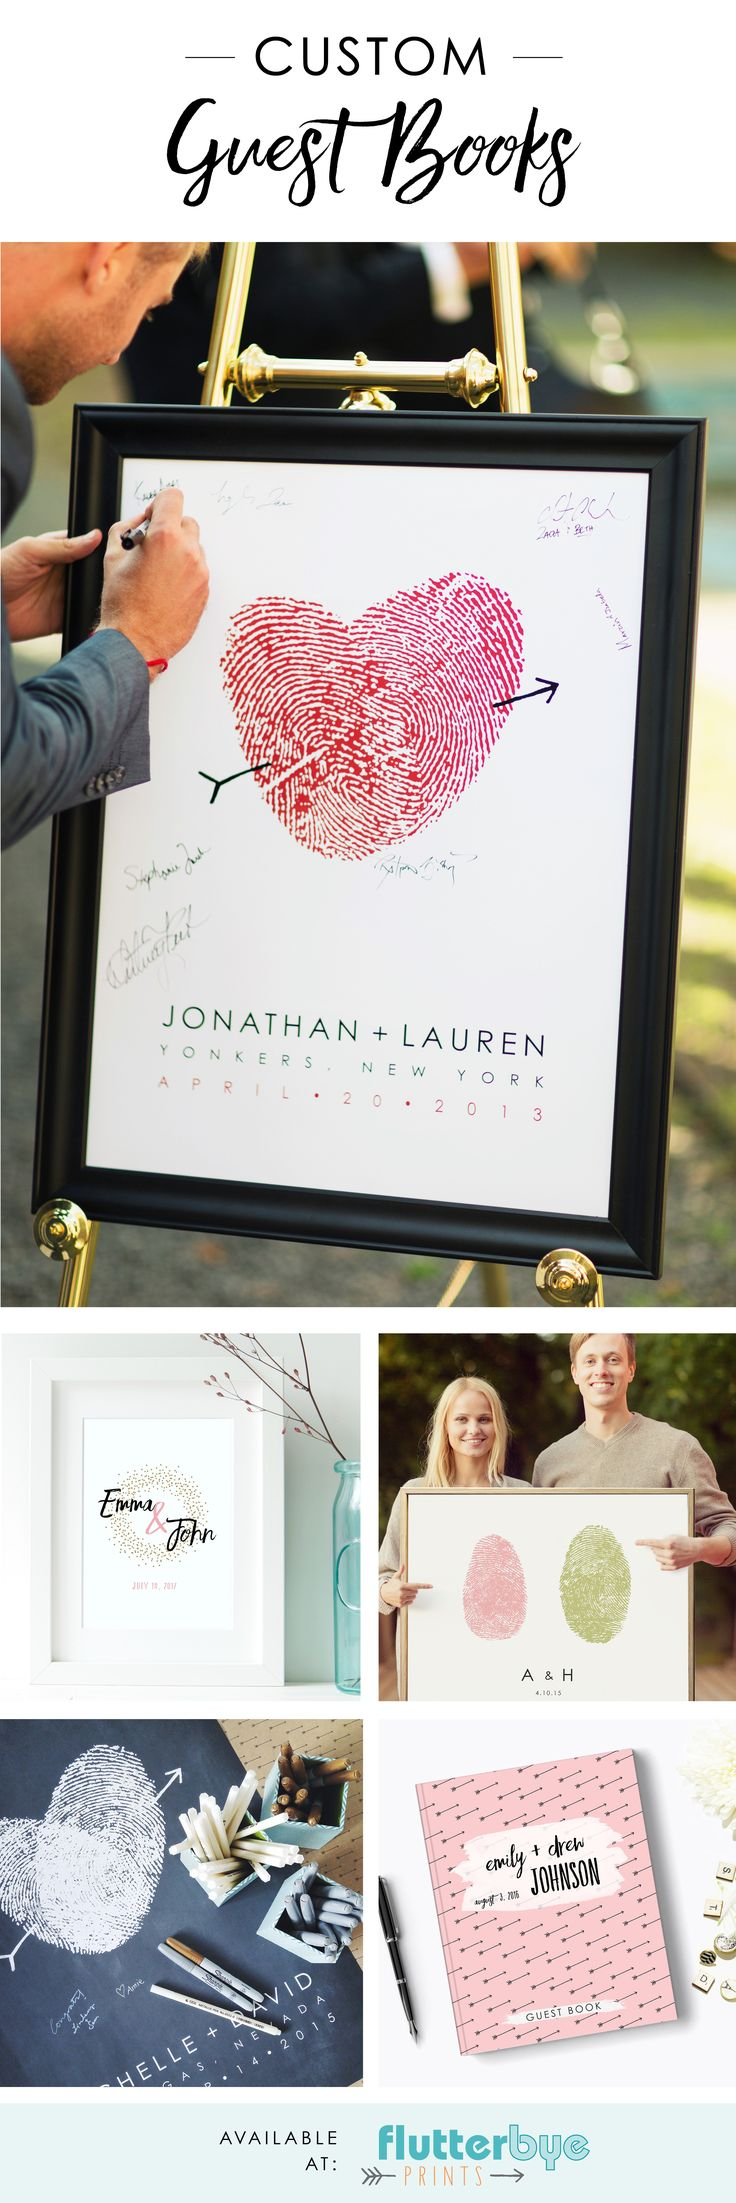 Guest book alternative posters and hard cover guestbooks.  Wedding signs and posters.